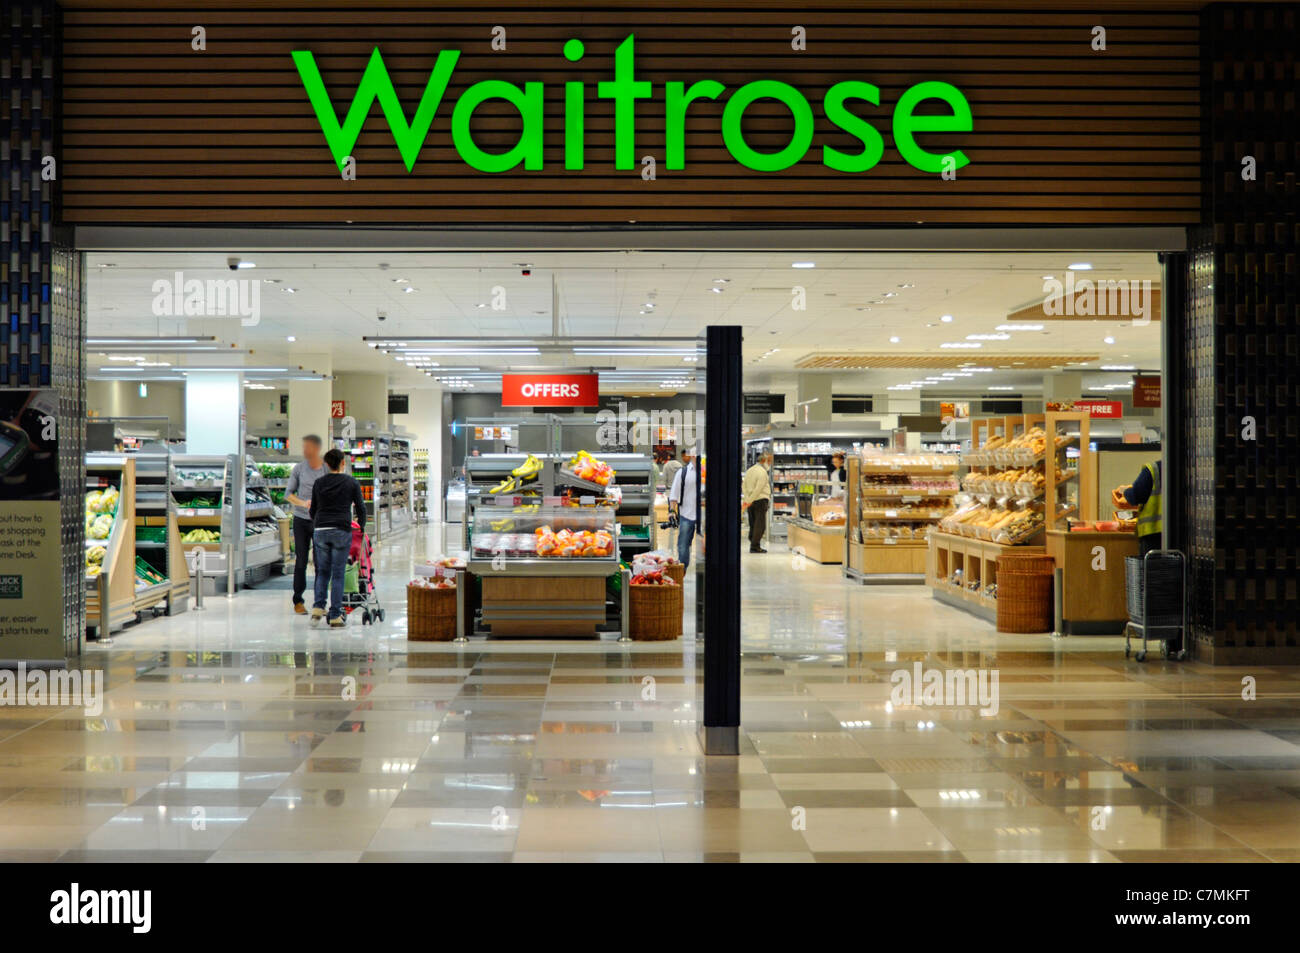 Waitrose food supermarket store front grocery shopping mall access within Westfield shopping centre at StratfordStock Photo